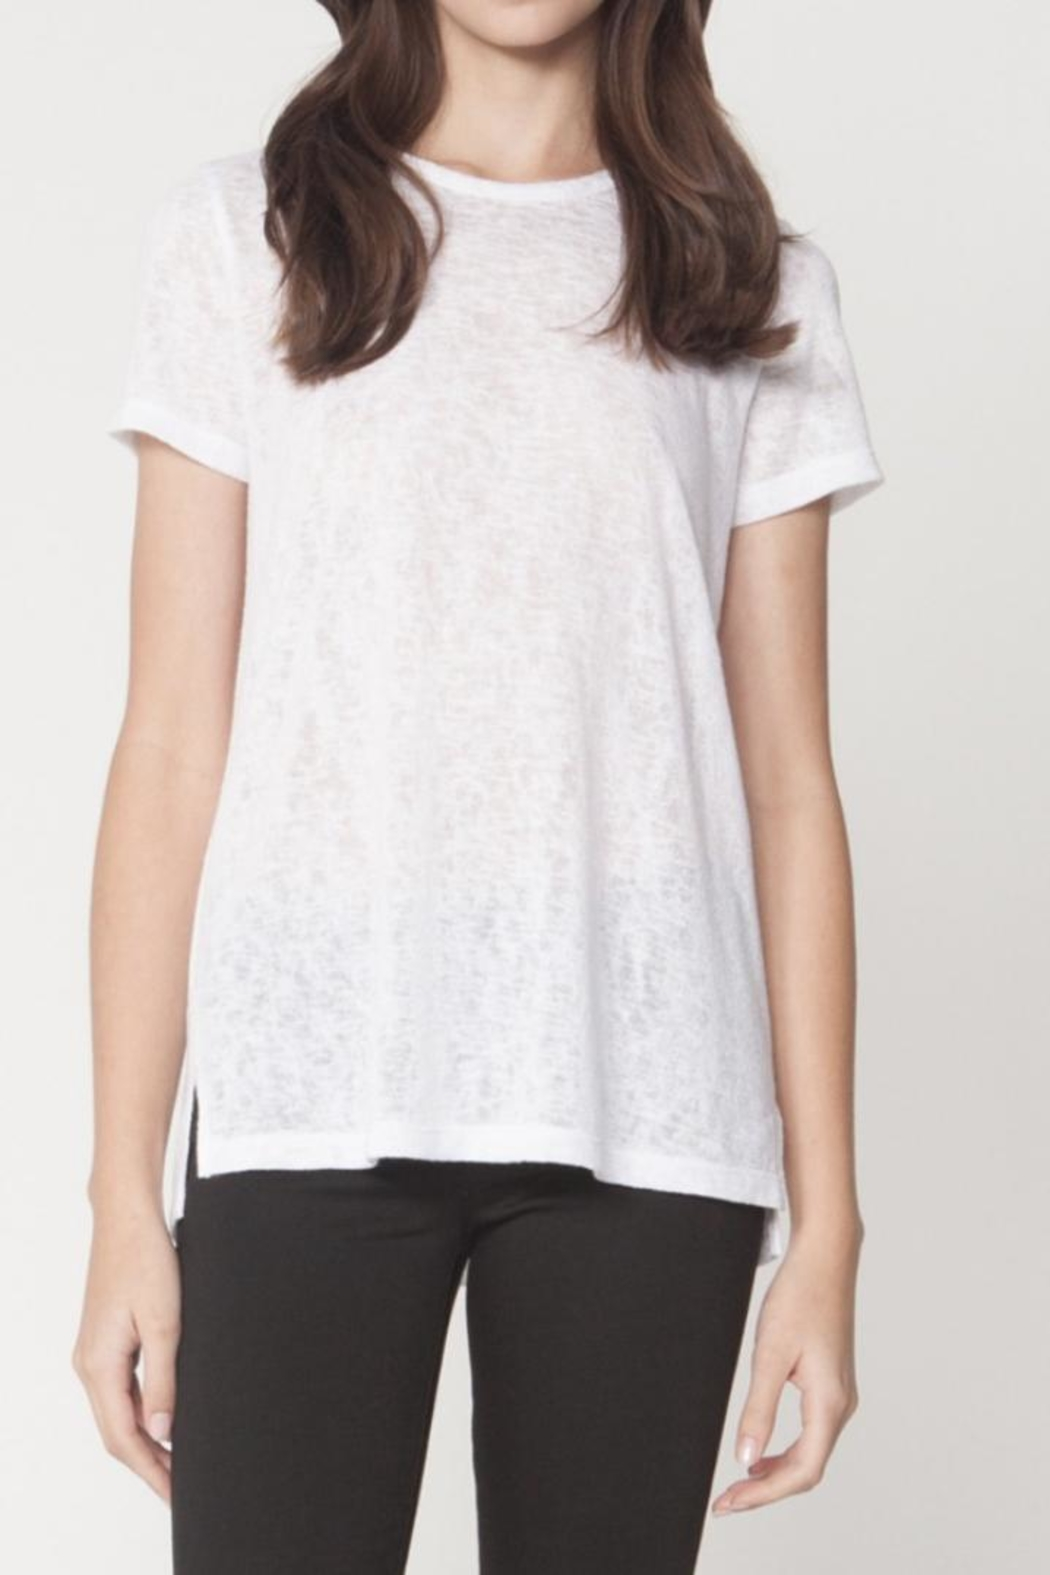 Michelle by Comune Soft White Tee - Main Image